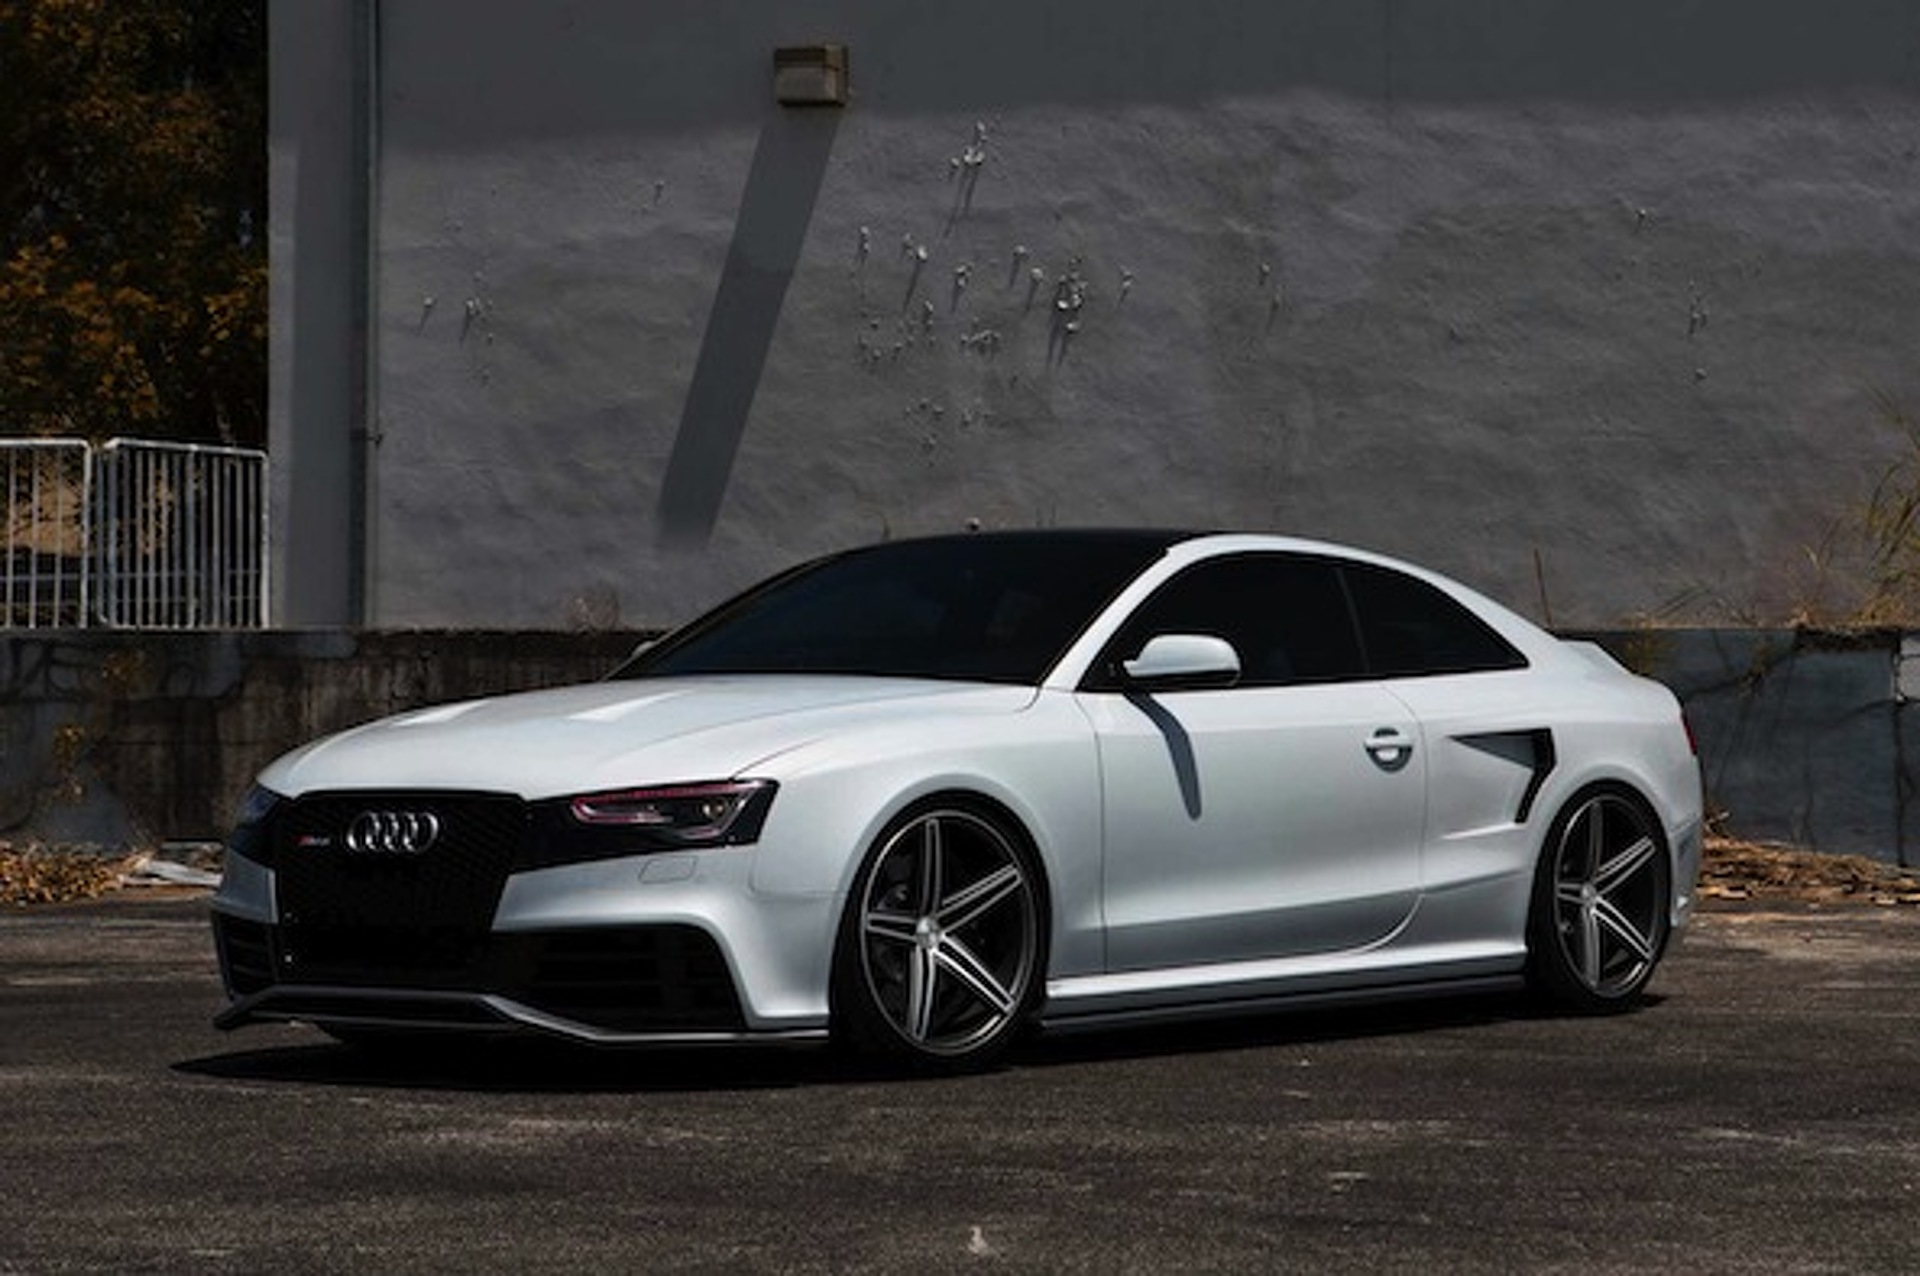 Vossen and OSS Designs Dream Up One Menacing Audi RS5 [W/Video]